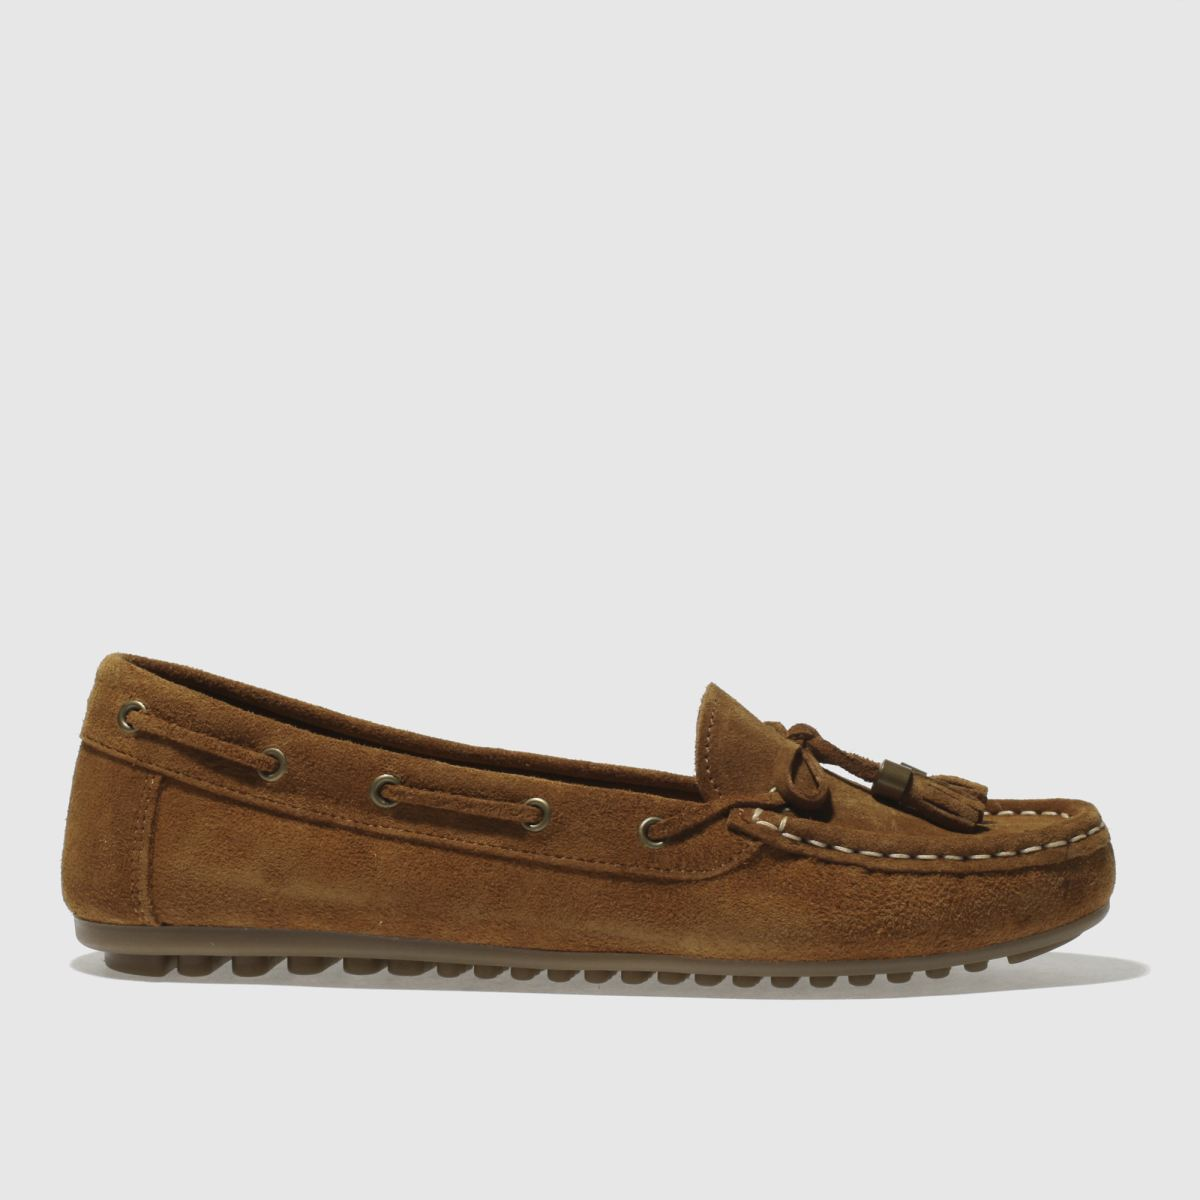 Schuh Tan Spin Around Flat Shoes